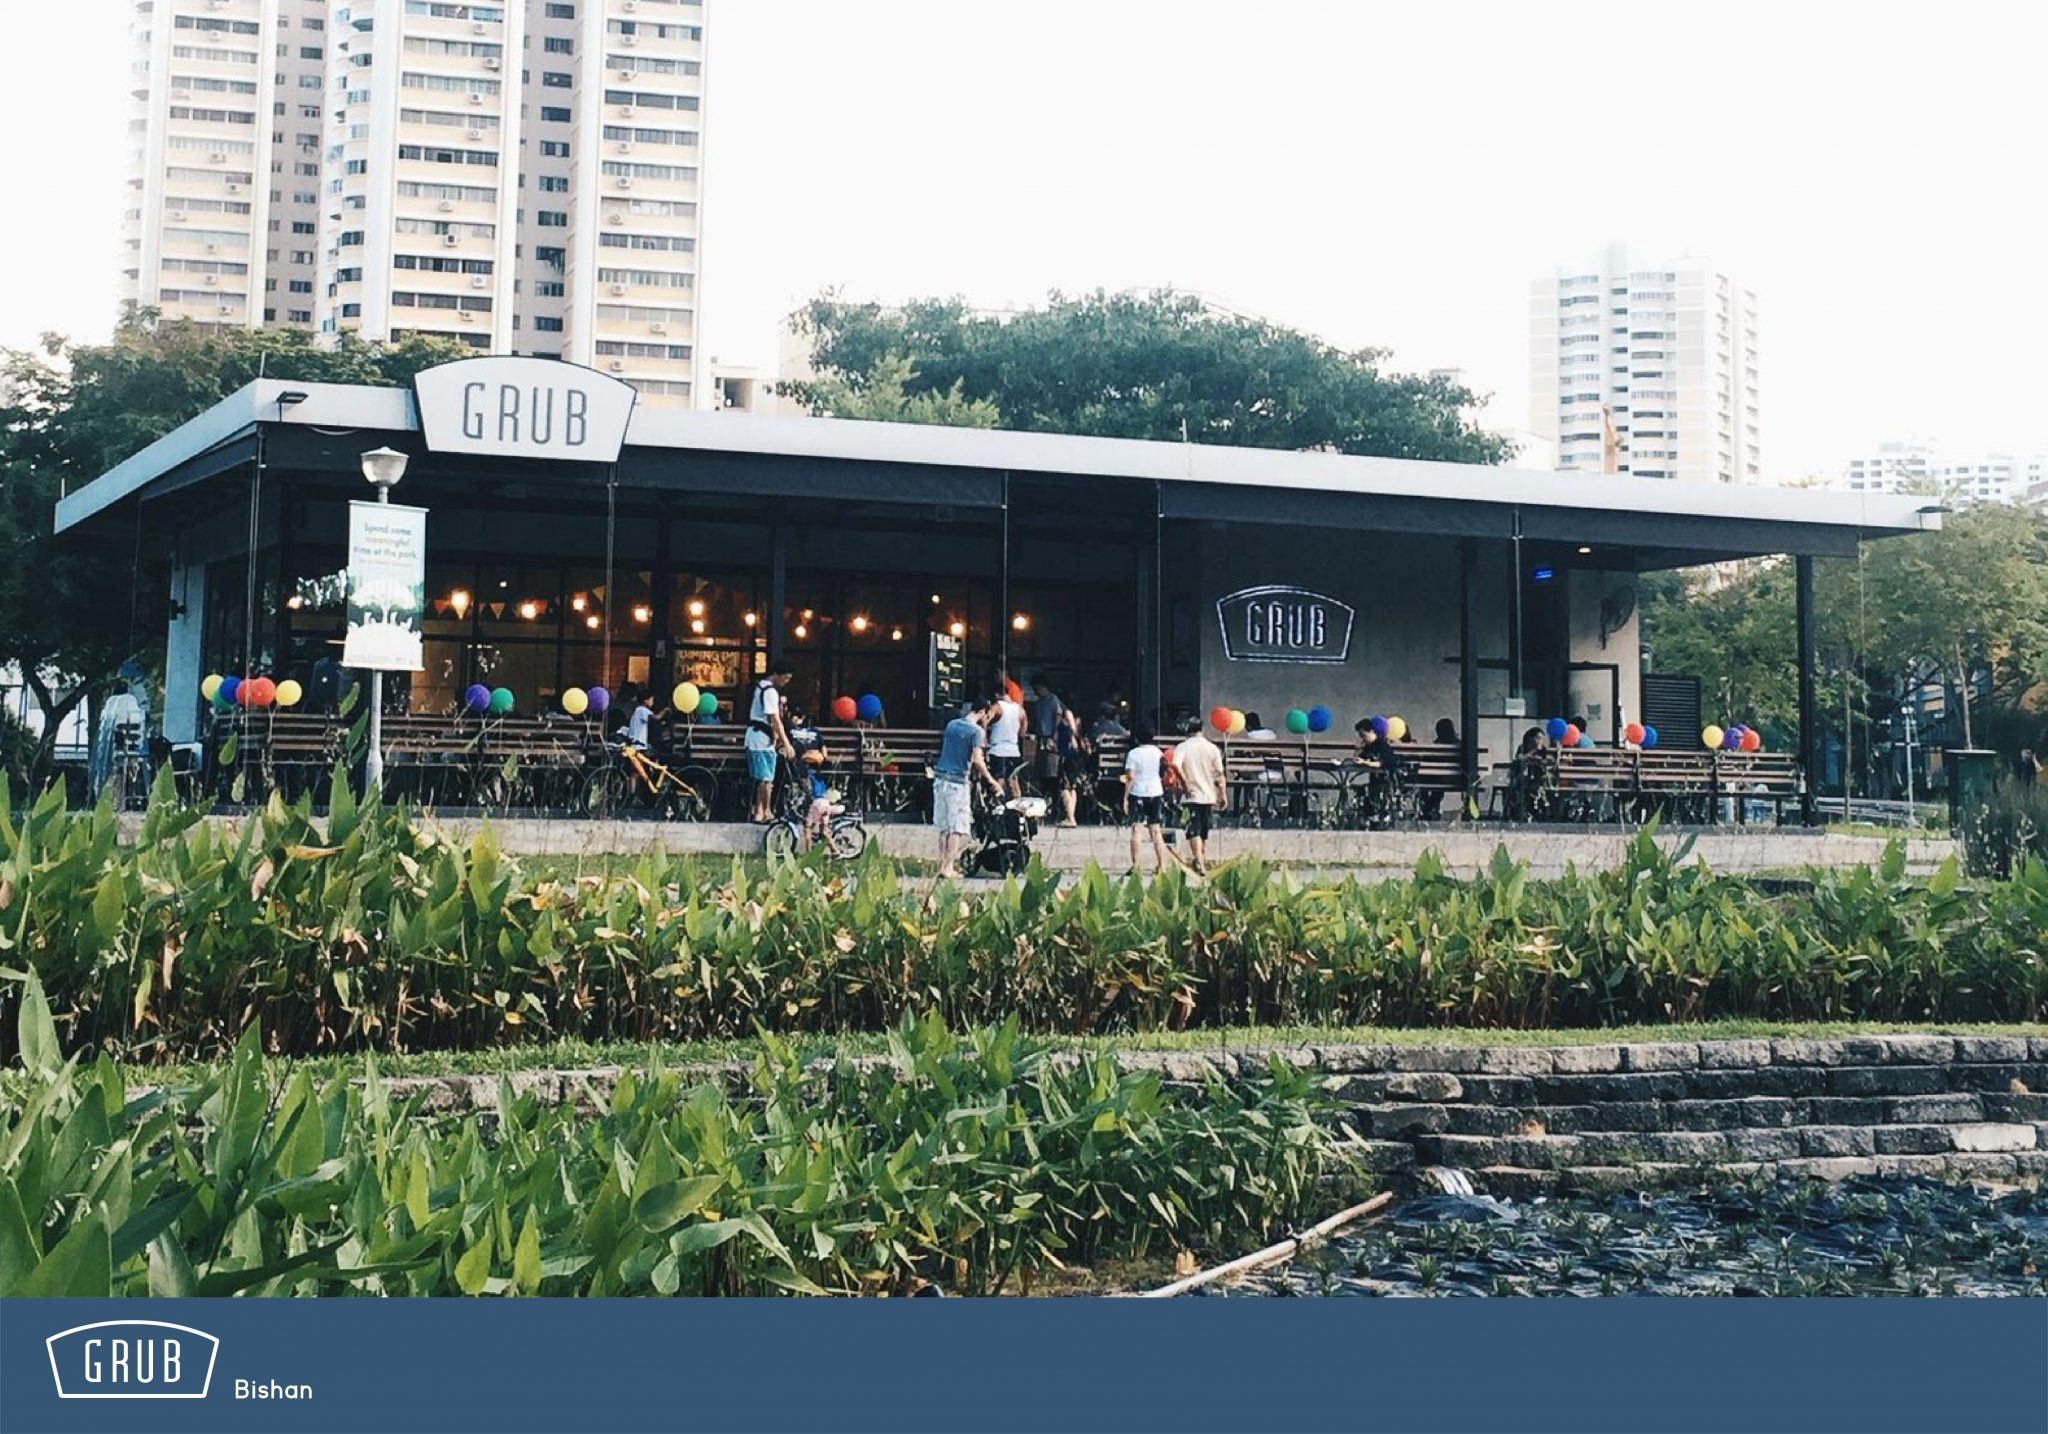 Grub Restaurant in Bishan EdgeProp Sg